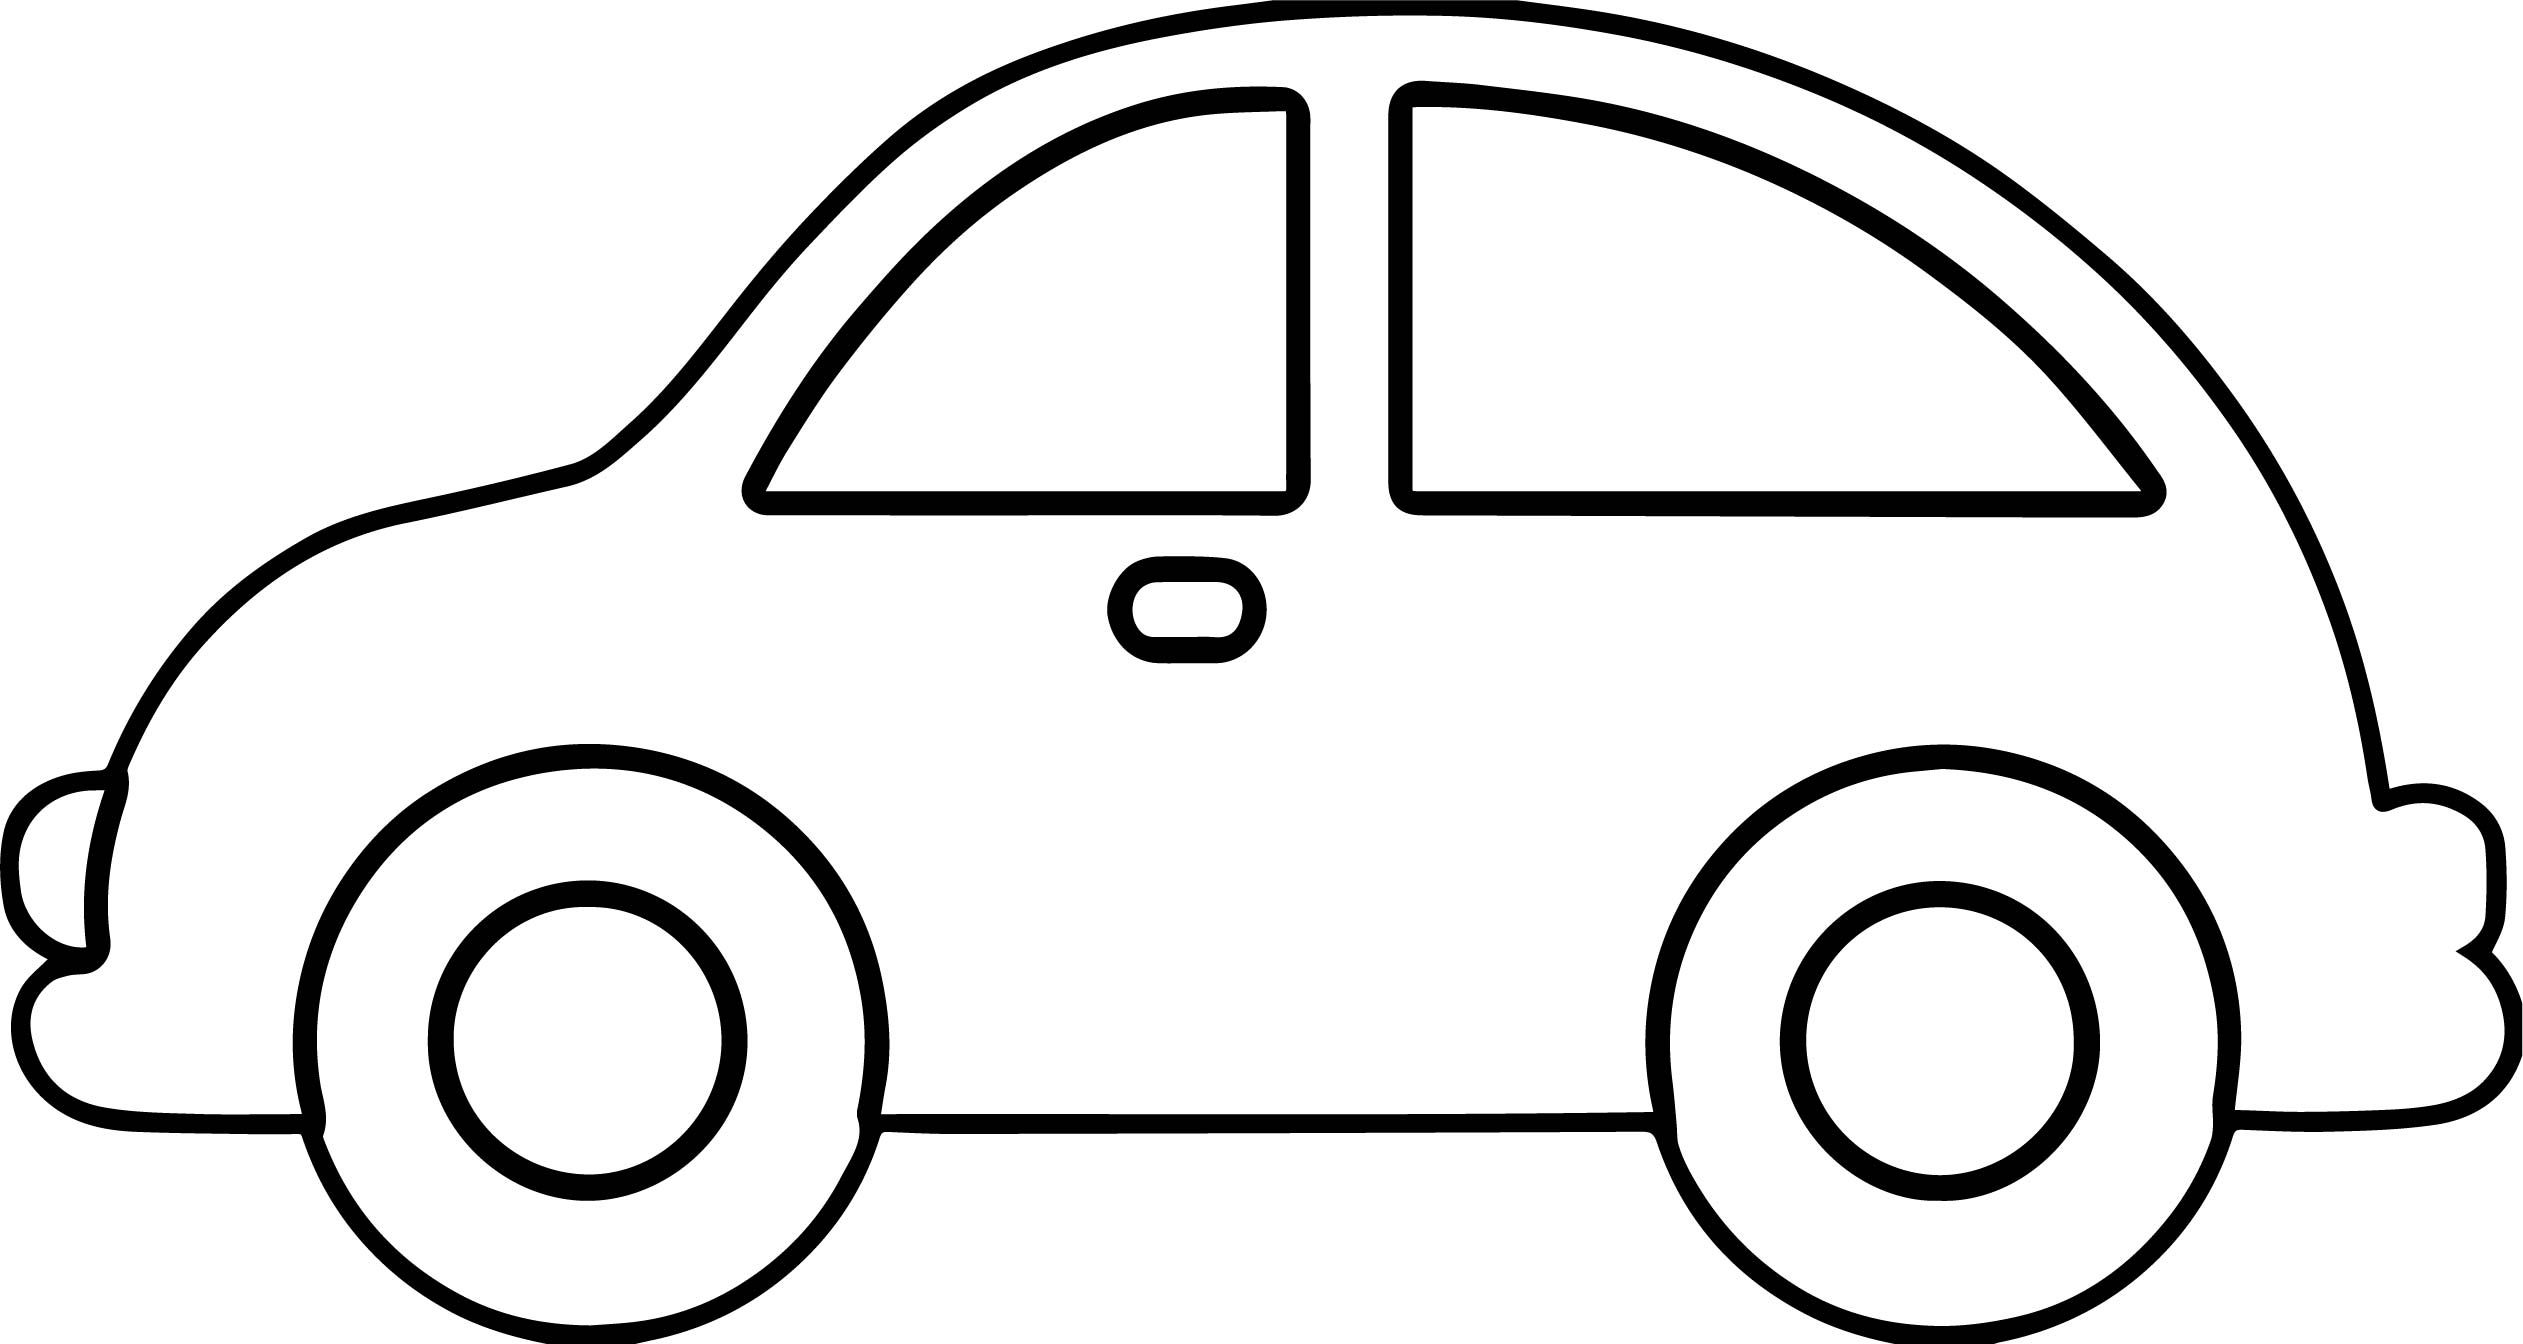 Black And White Cartoon Car Car Outline Free Download Best Car